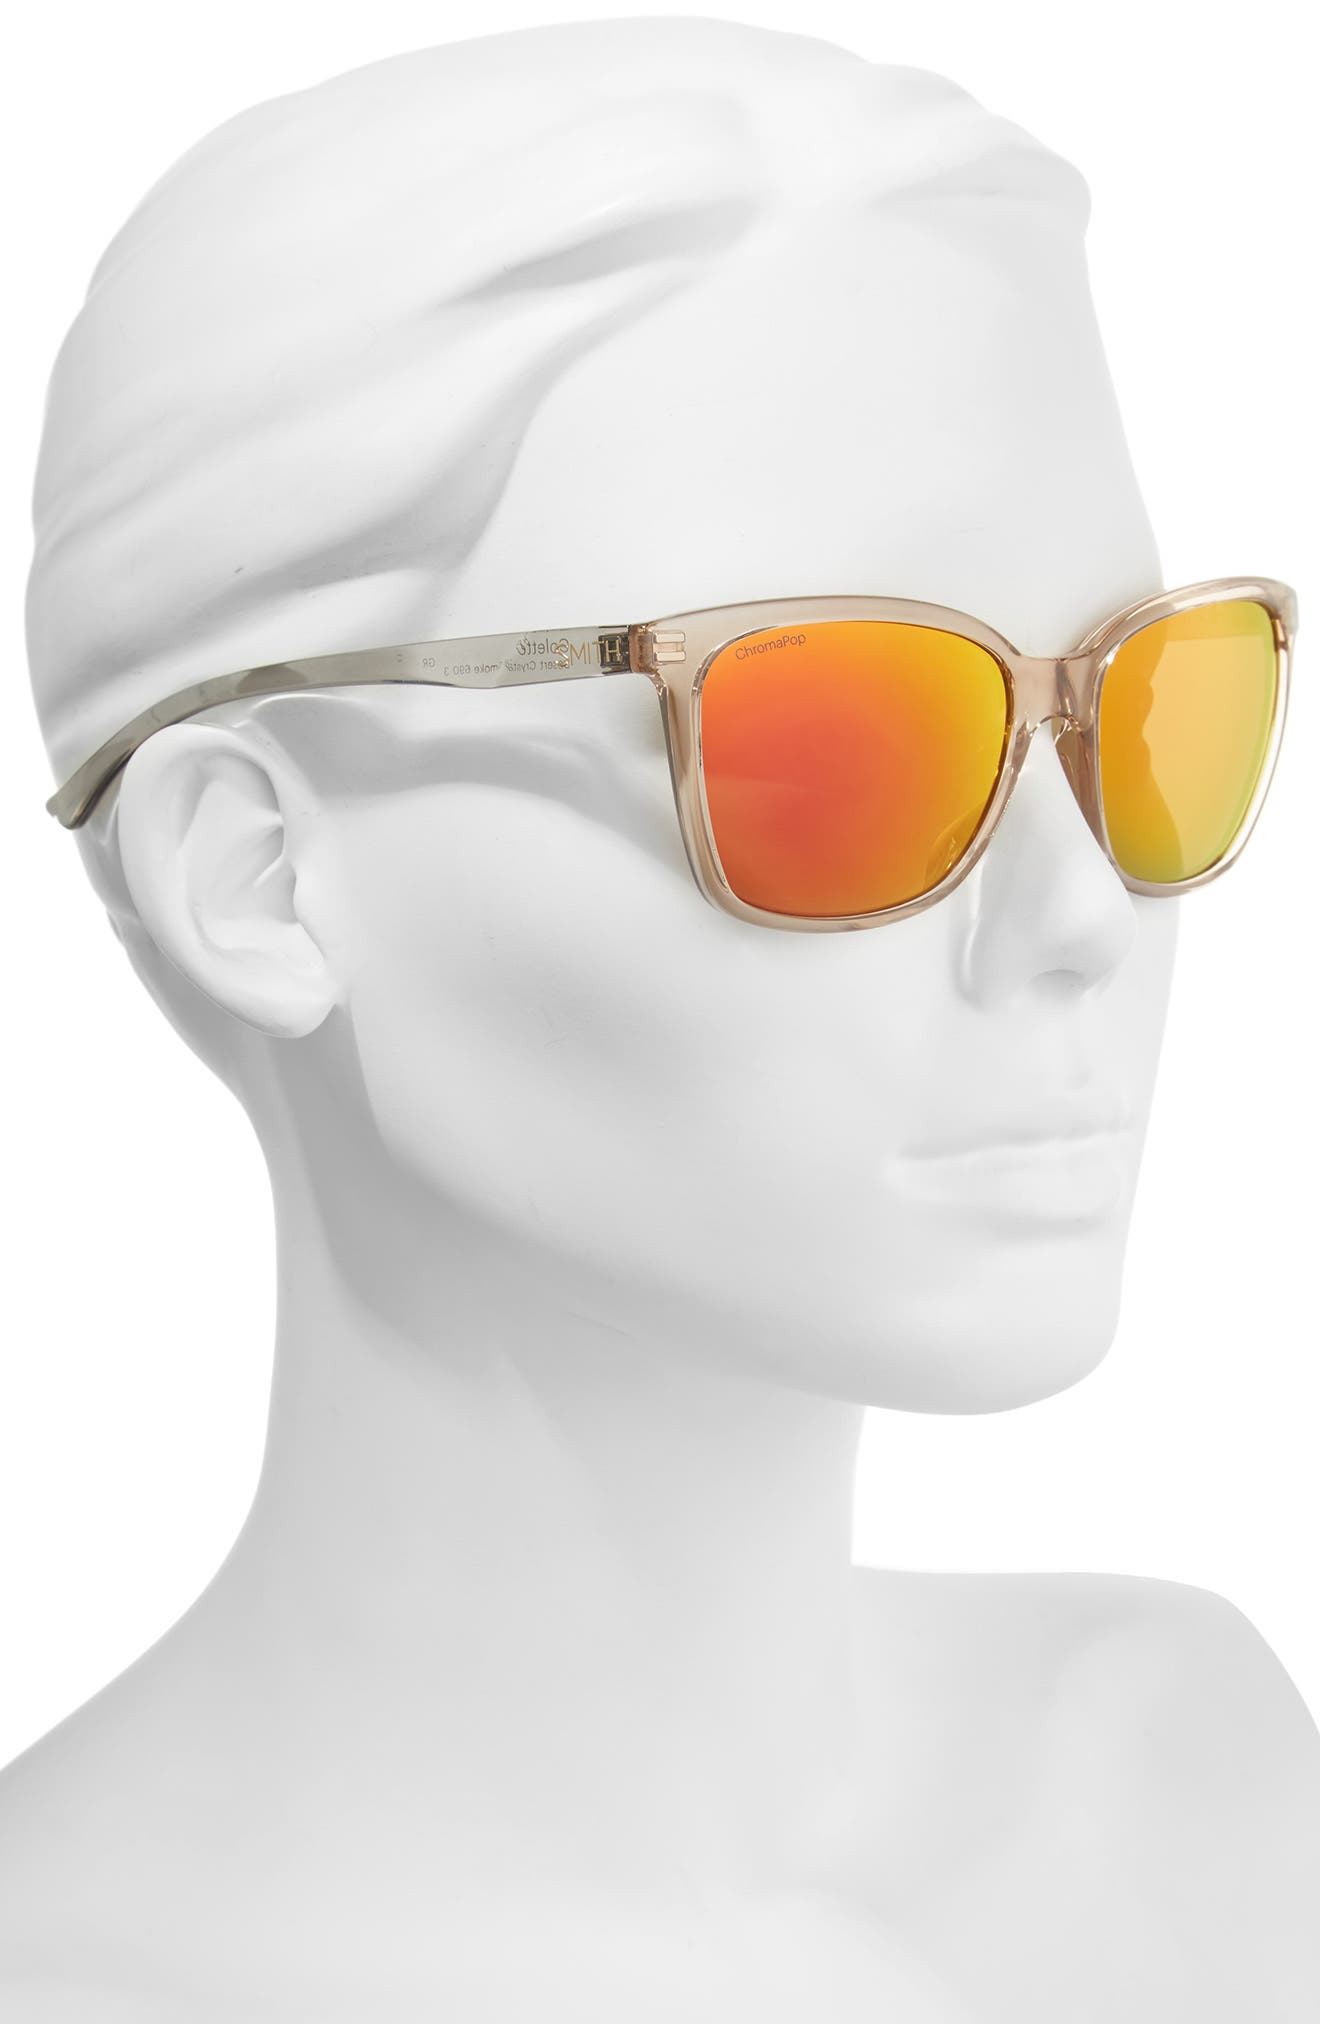 Colette Chromapop 55mm Polarized Mirrored Lens Sunglasses,                             Alternate thumbnail 2, color,                             250